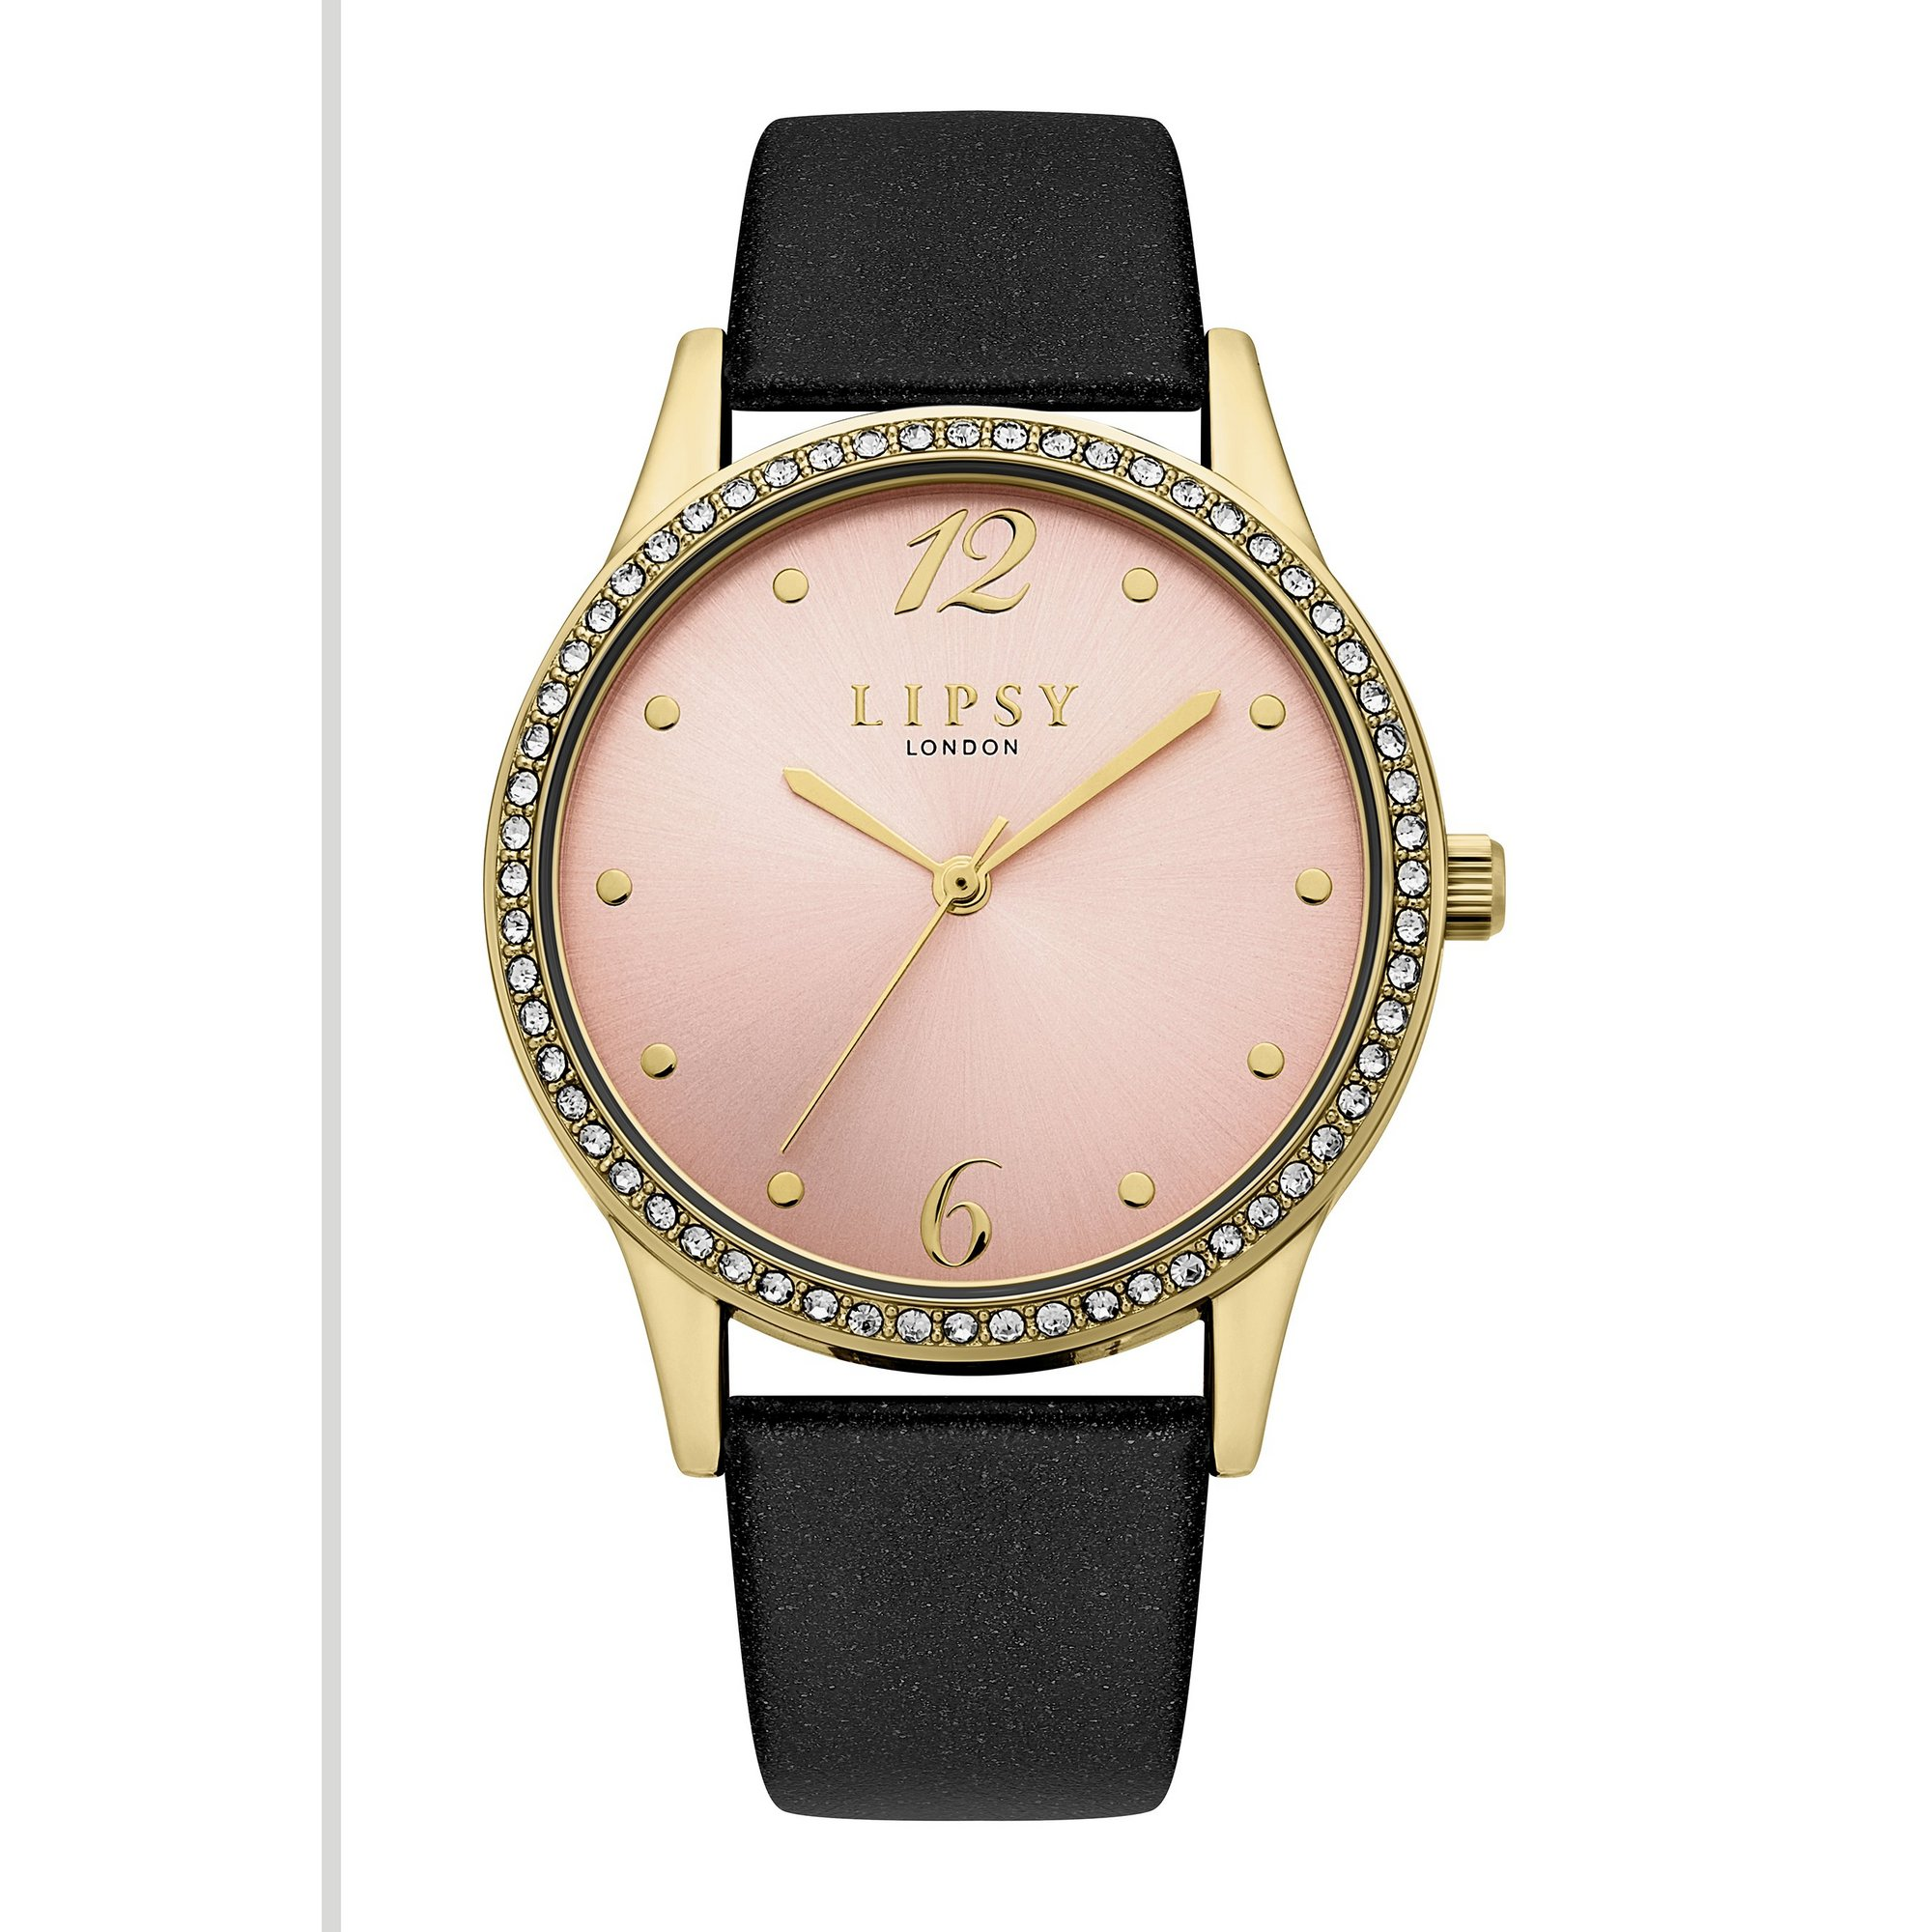 Image of Lipsy Black Strap Watch with Pale Pink Dial